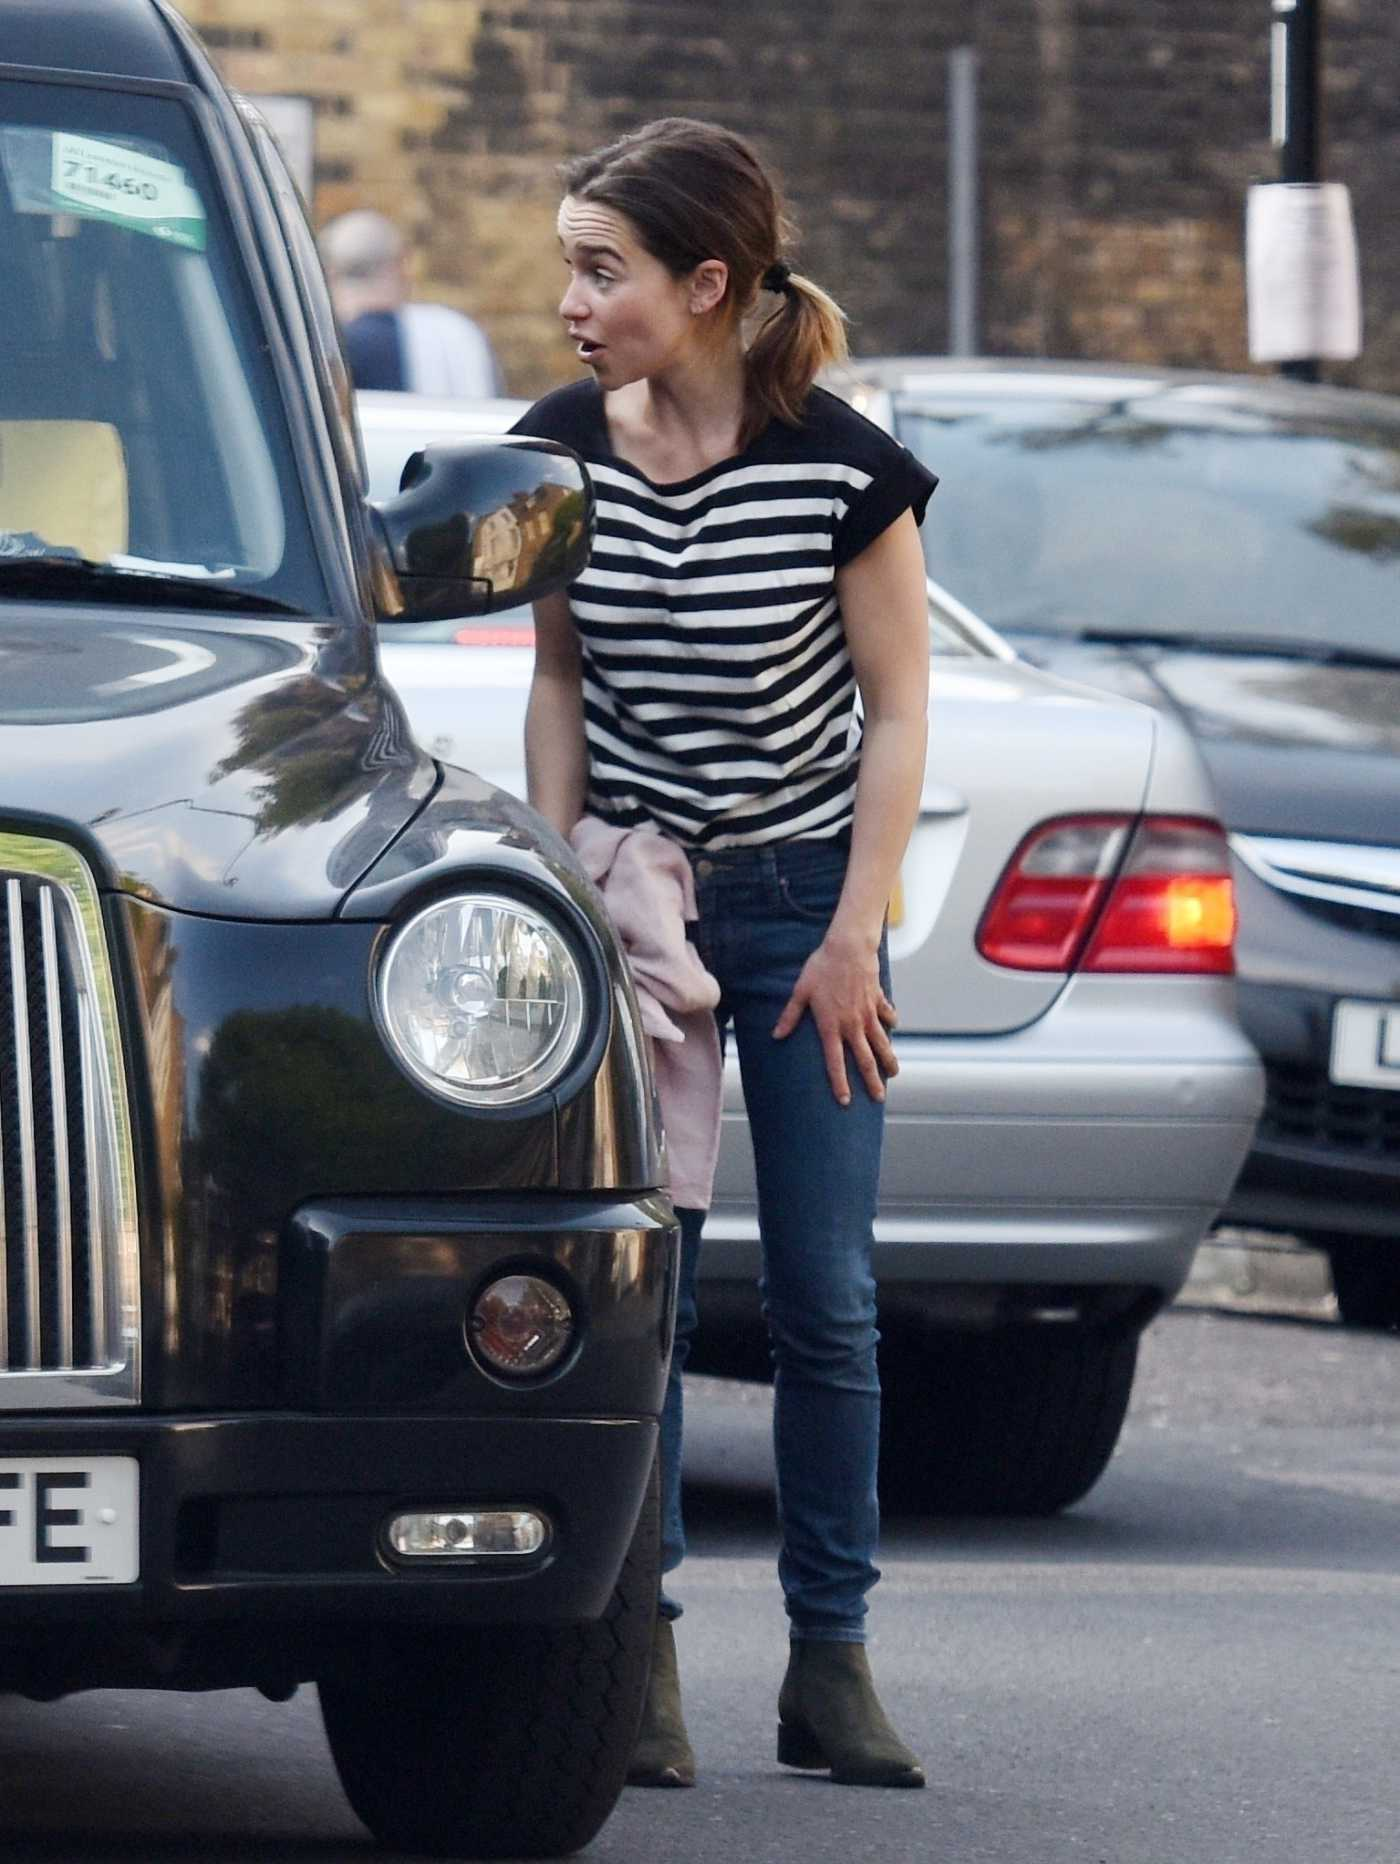 Emilia Clarke in a Striped Tee Asks a Cab Driver to Deliver a Package in London 05/07/2020